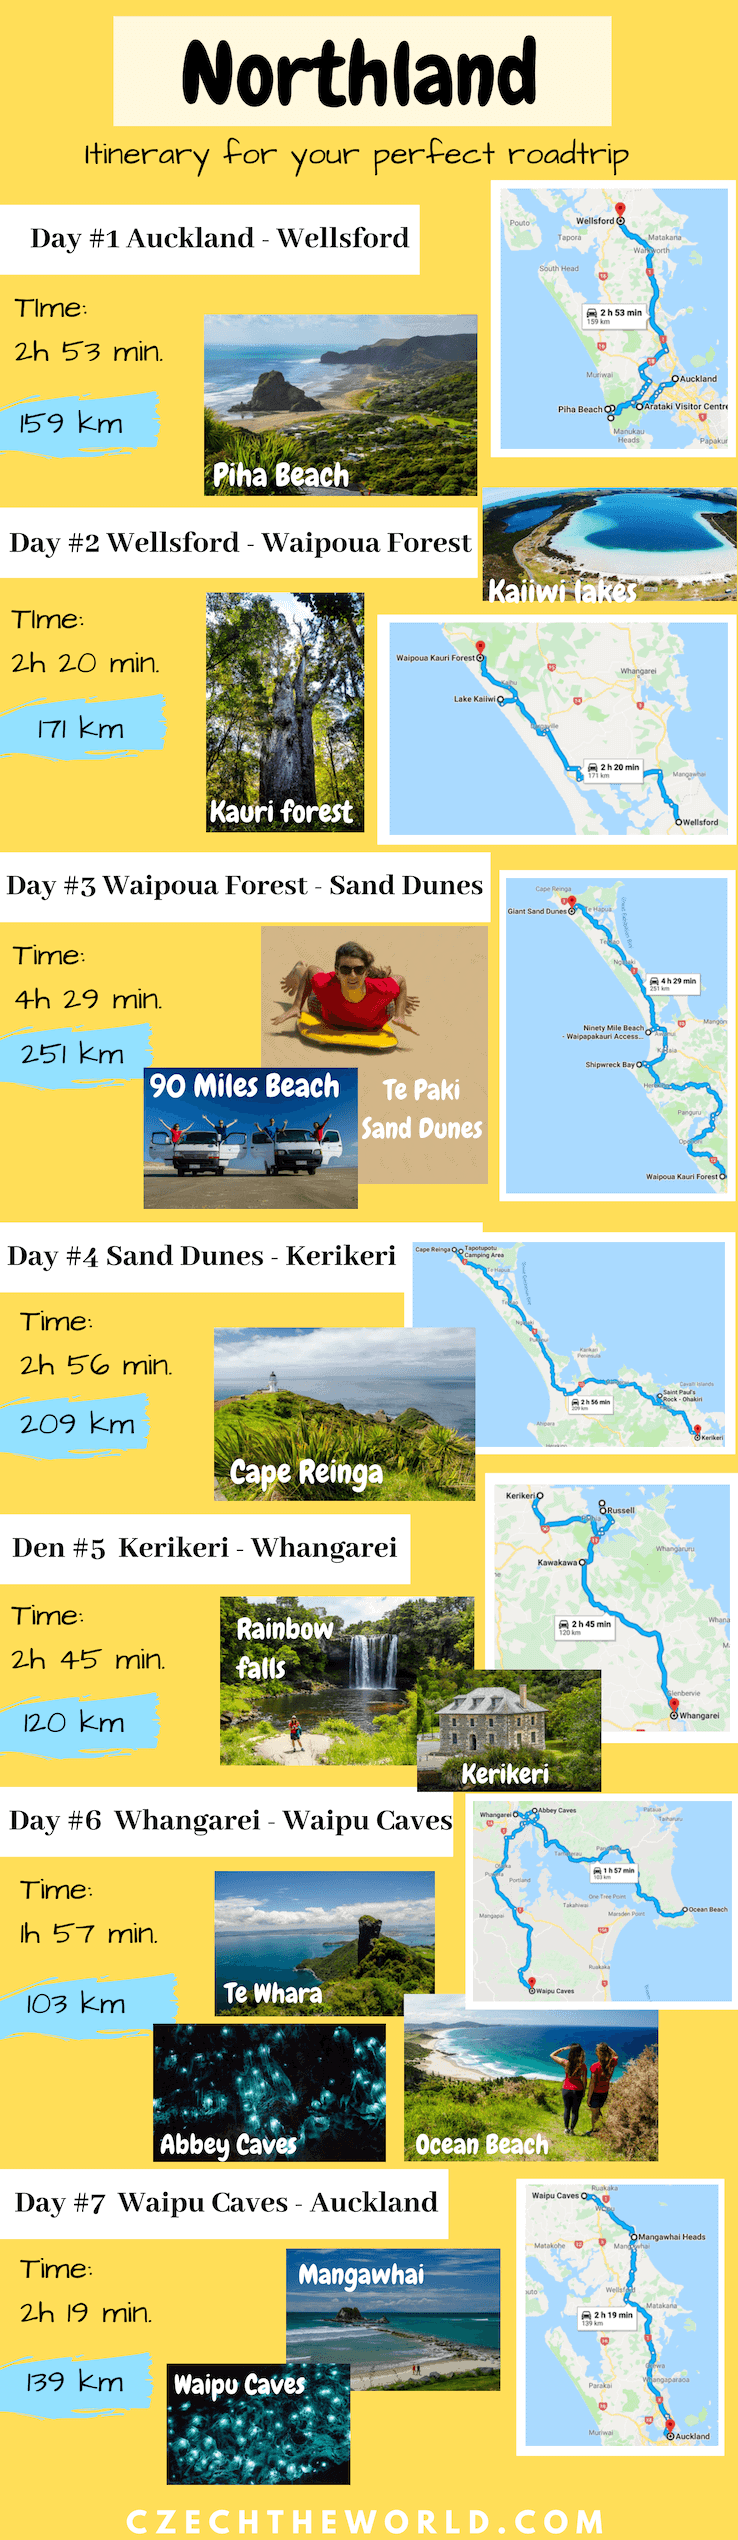 Northland roadtrip itinerary